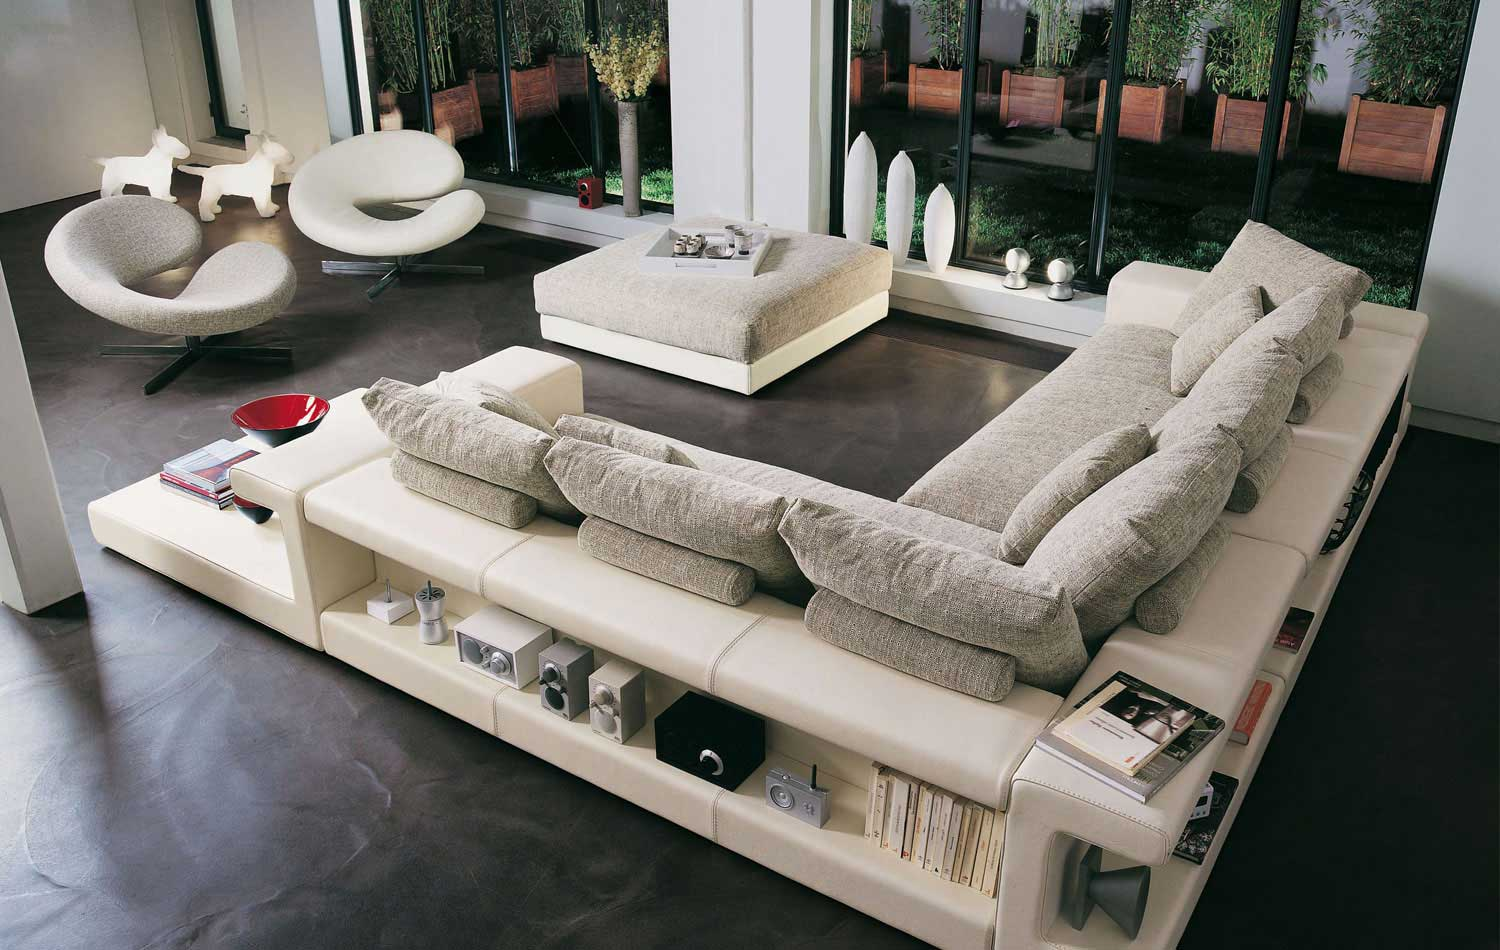 Living Room Inspiration 120 Modern Sofas By Roche Bobois Part 2 3 Architecture Design - Divano Designs